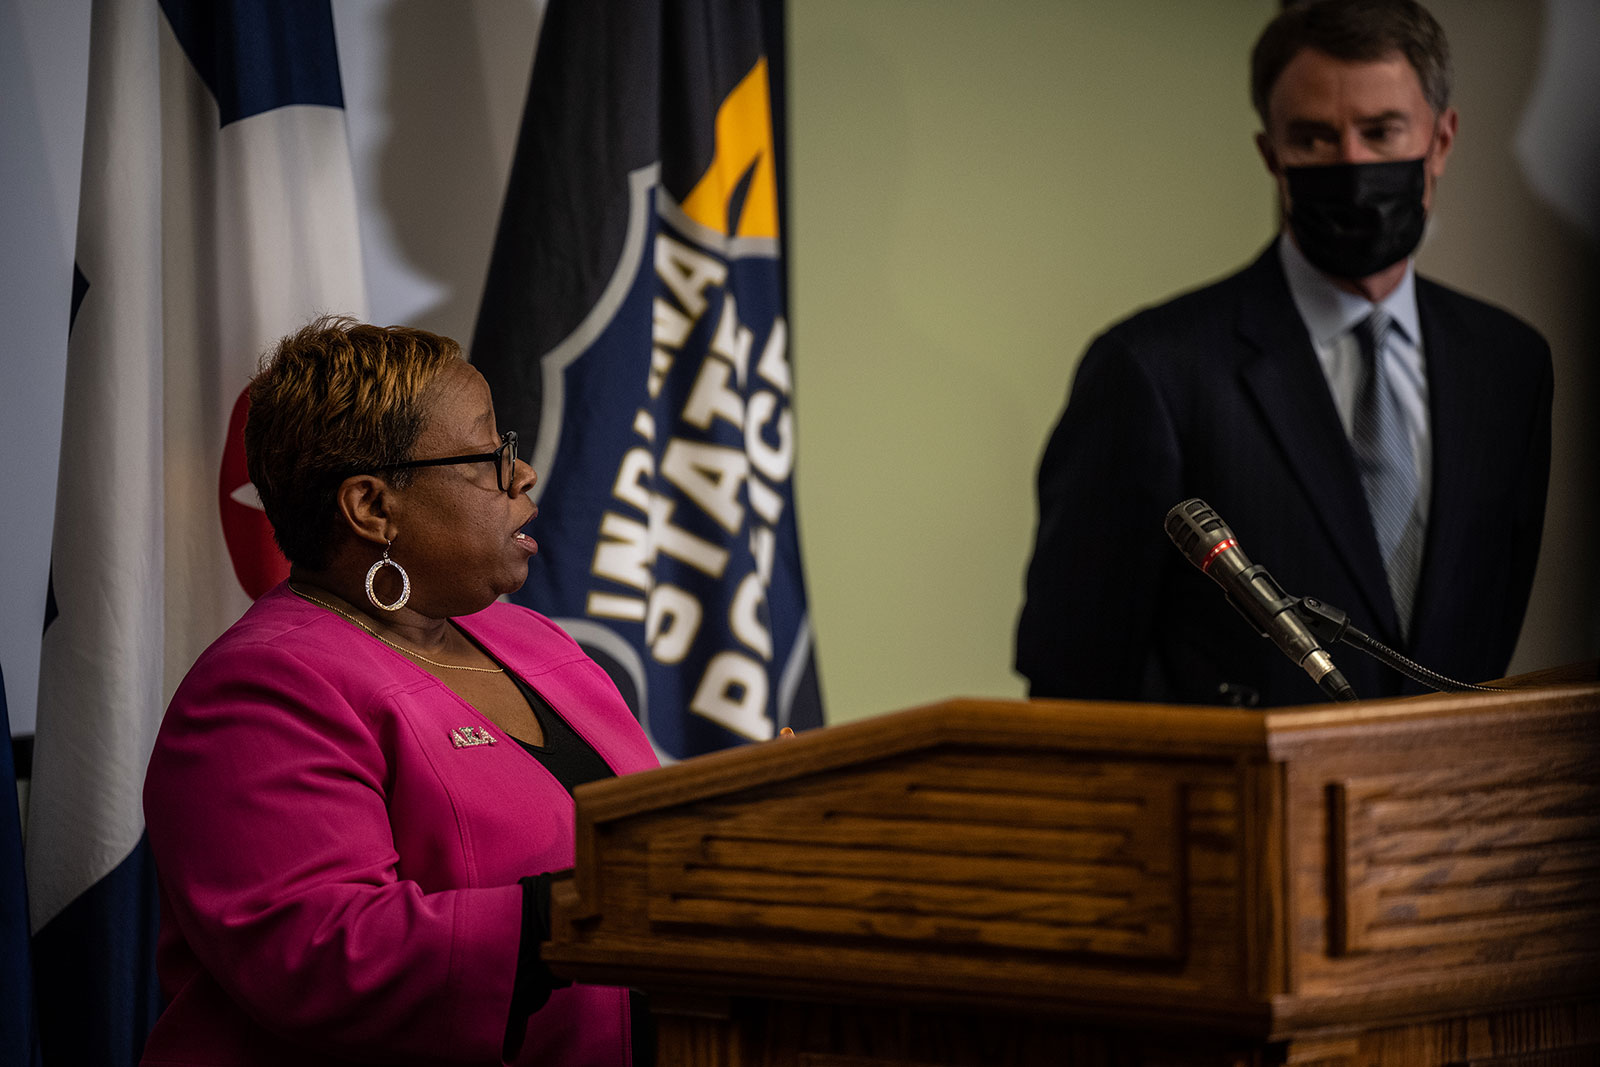 Alfarena McGinty speaks during a press conference on April 16.